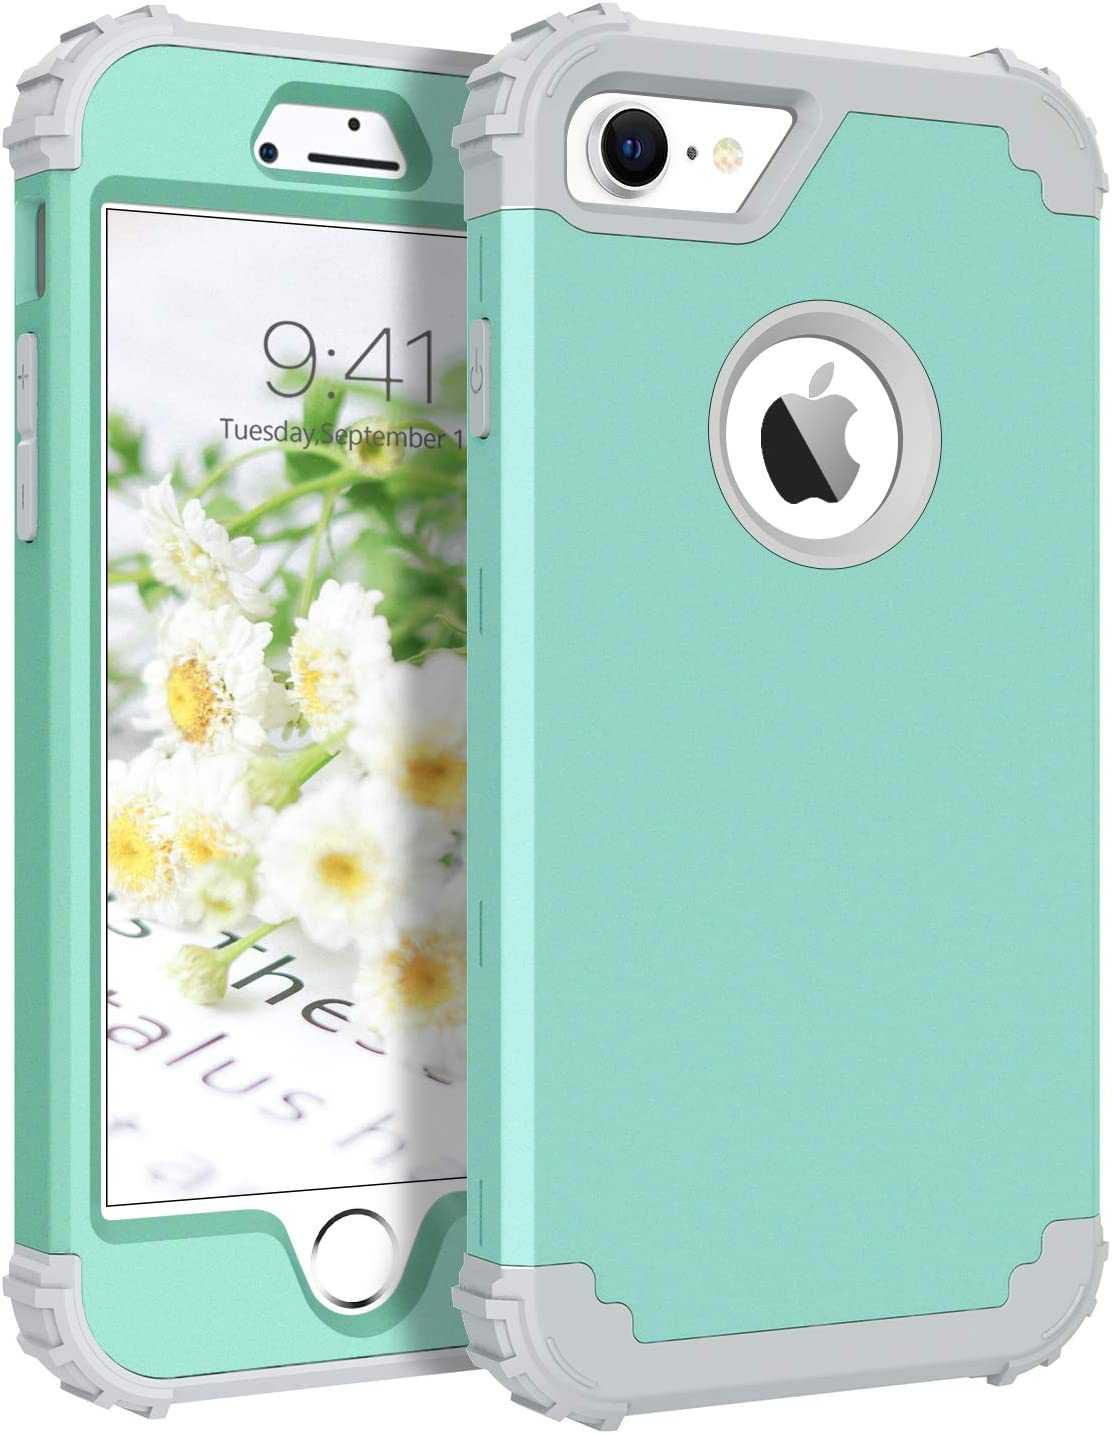 BENTOBEN iPhone 7 Case, iPhone 8 Case, 3 in 1 Hybrid Hard PC Soft Rubber Bumper Heavy Duty Shockproof Full Body Rugged Protective Phone Case Cover for iPhone 7 / iPhone 8 4.7 Inch, Mystic Green